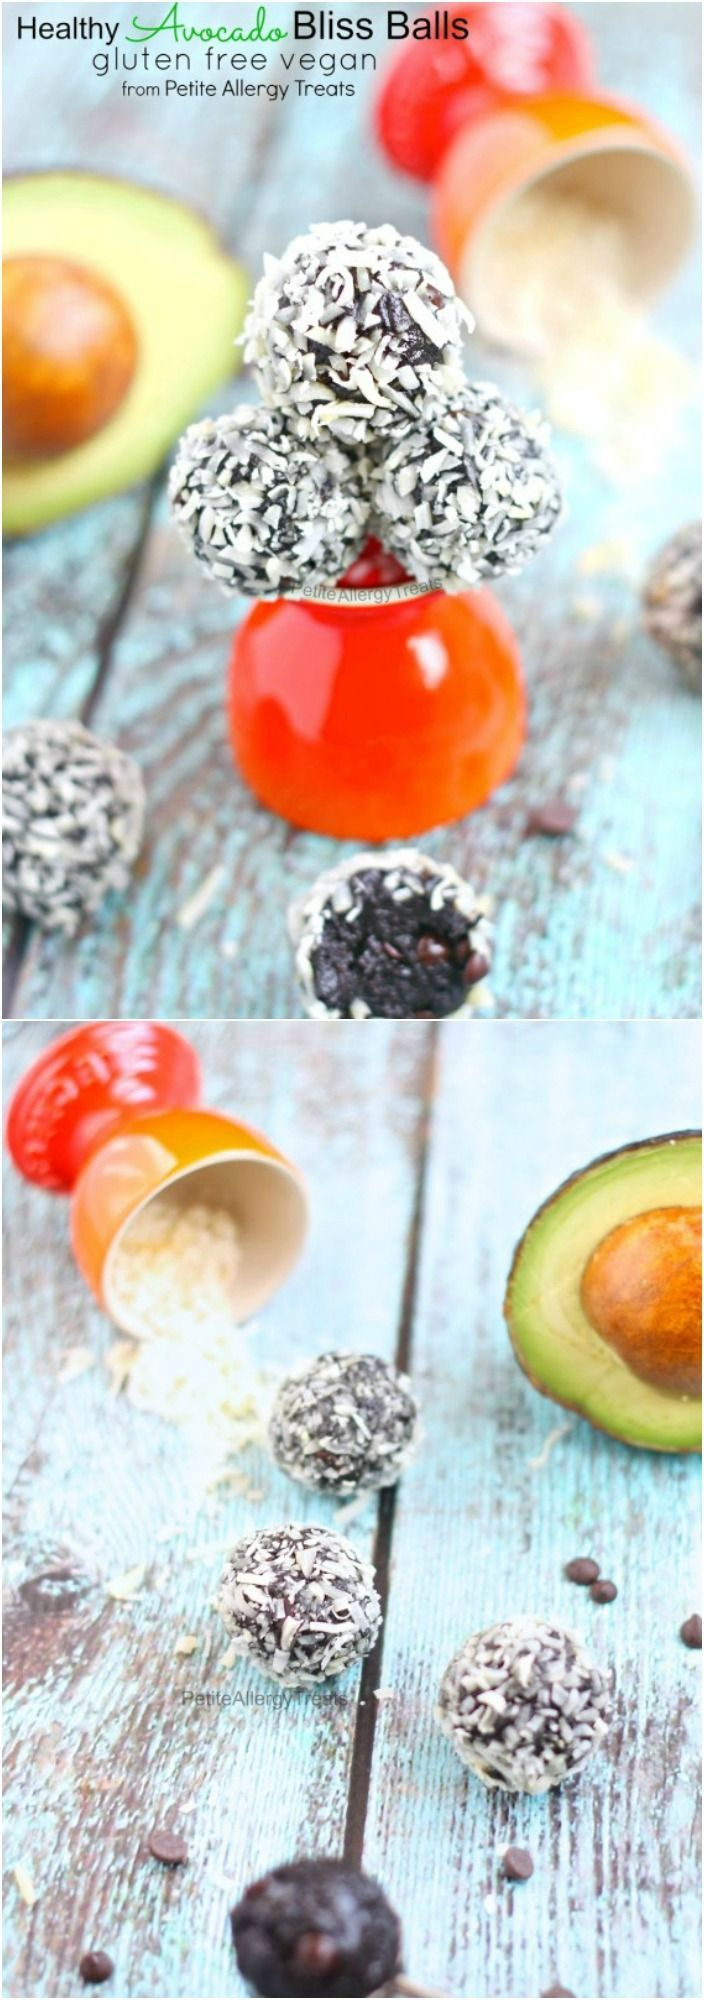 Healthy Chocolate Avocado Bliss Balls are the perfect healthy snack that are gluten free and vegan.